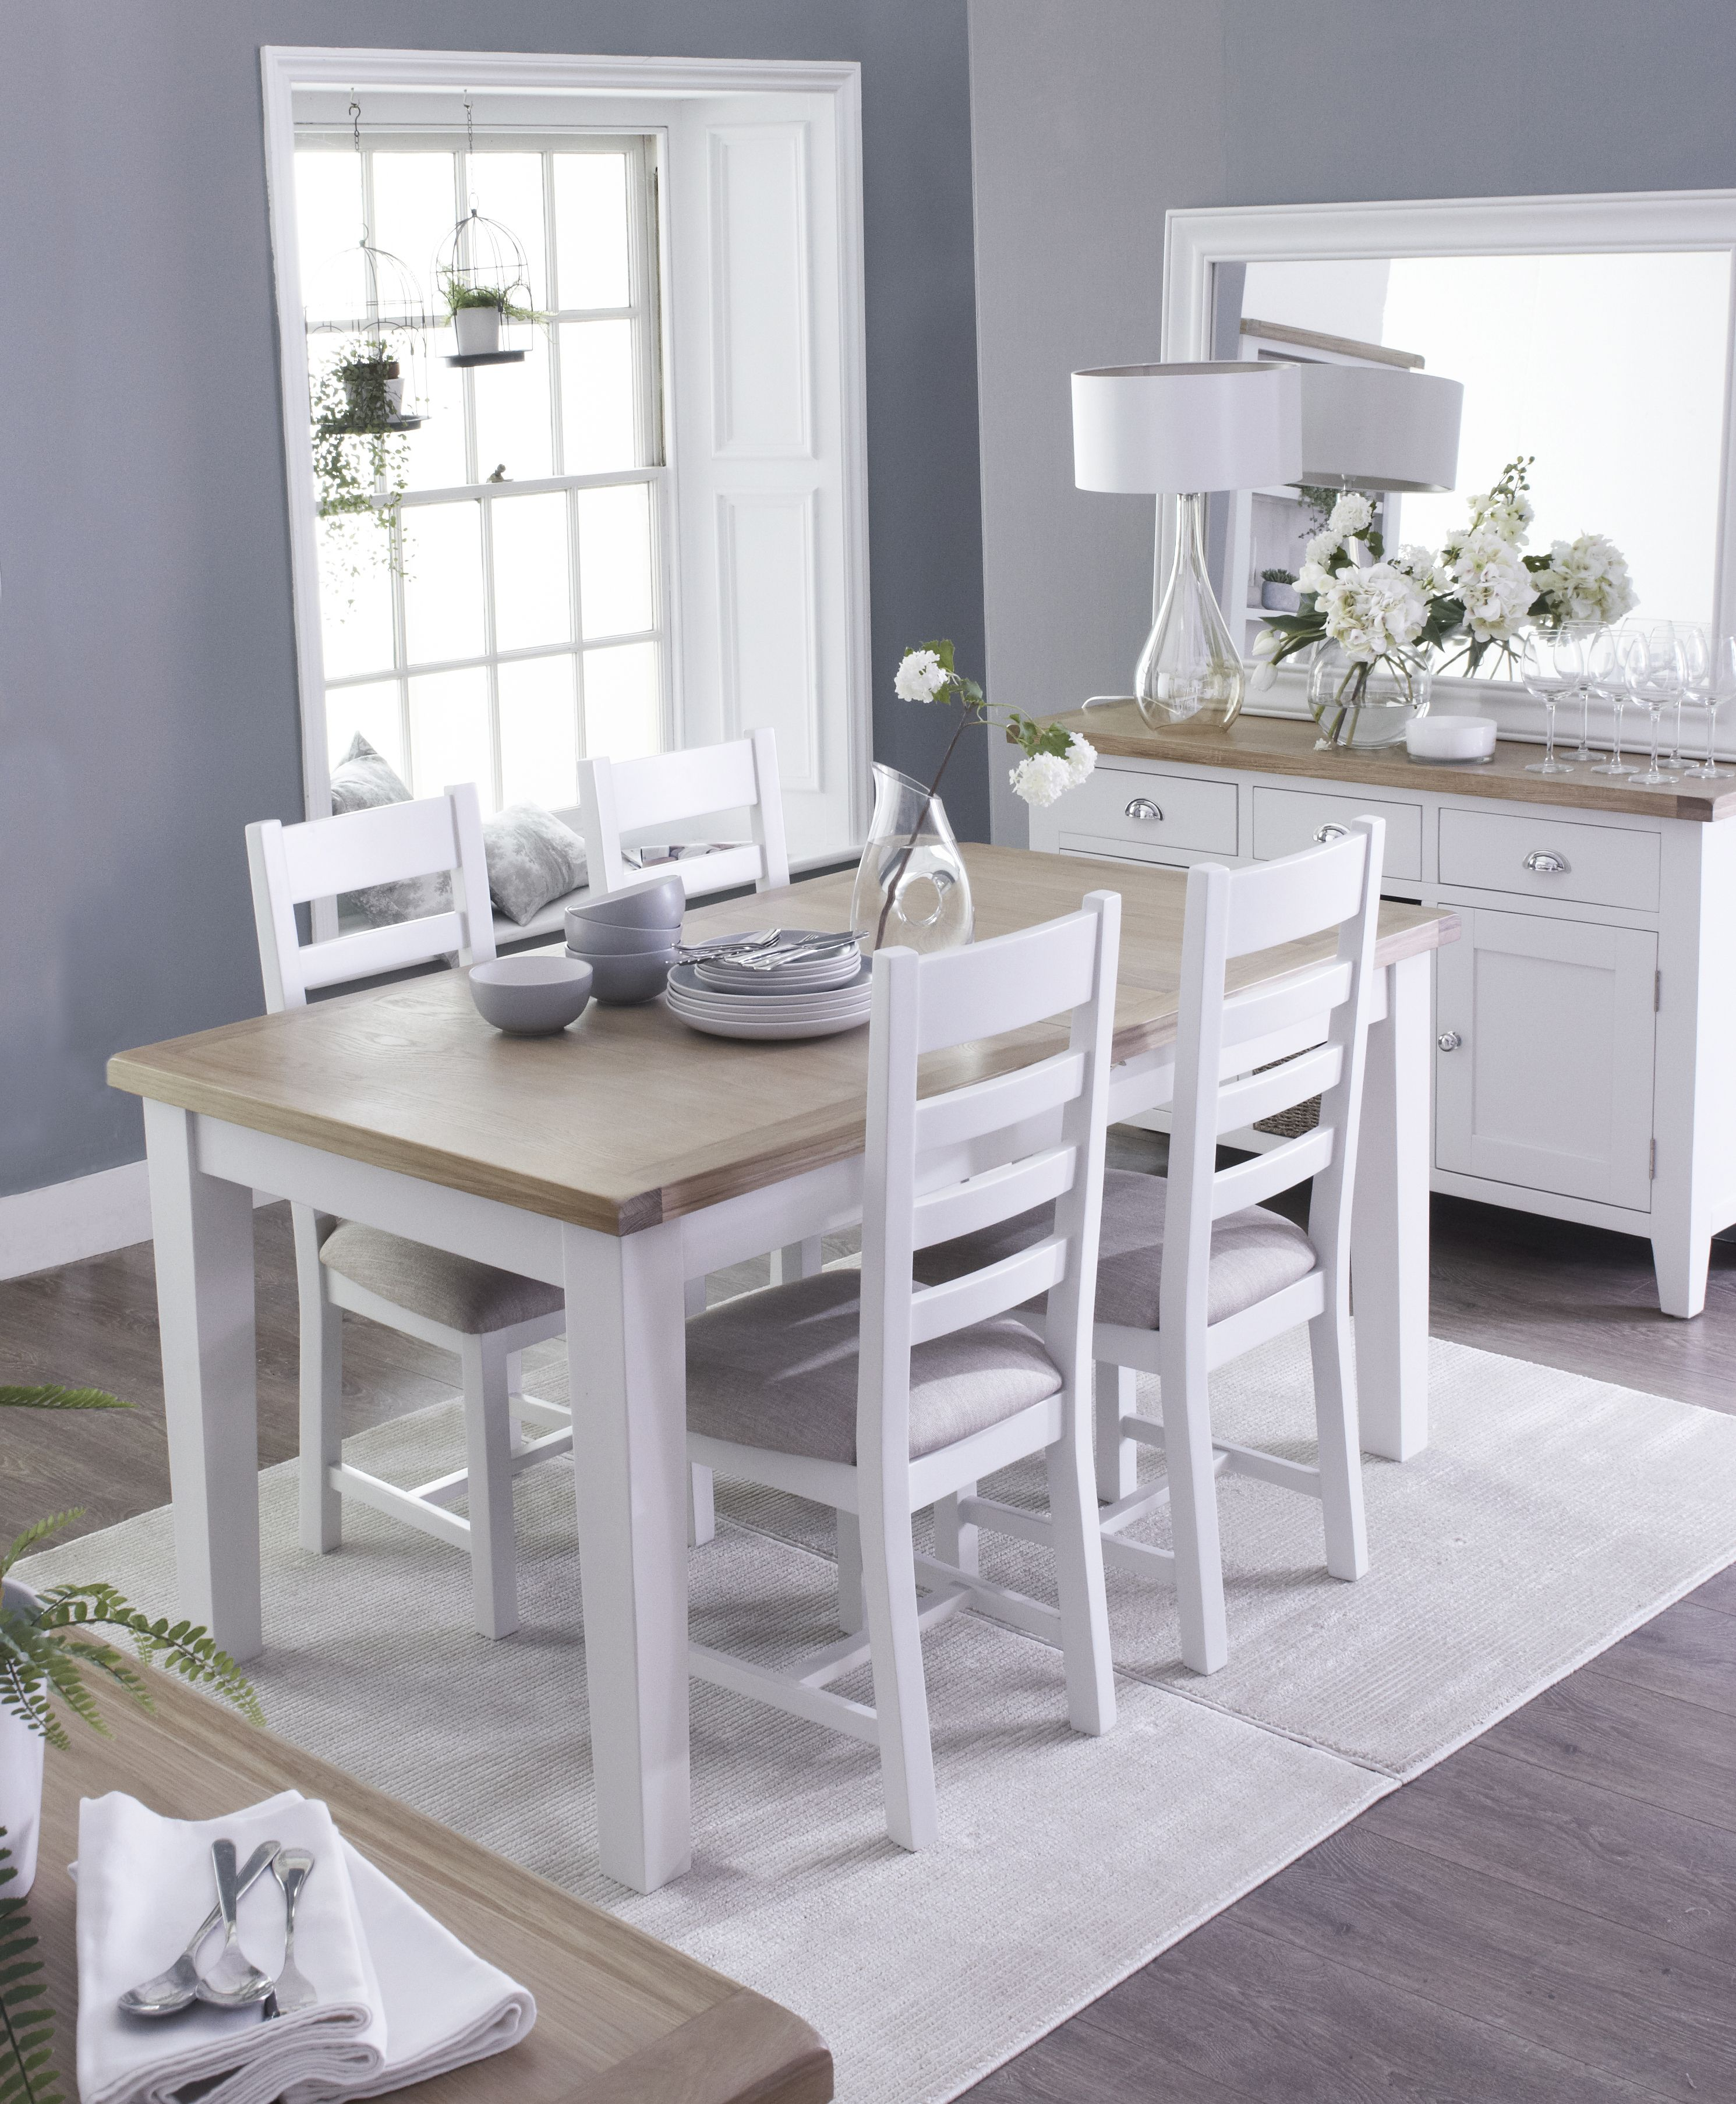 Suffolk Painted Oak Furniture available online at Chiltern Oak ...